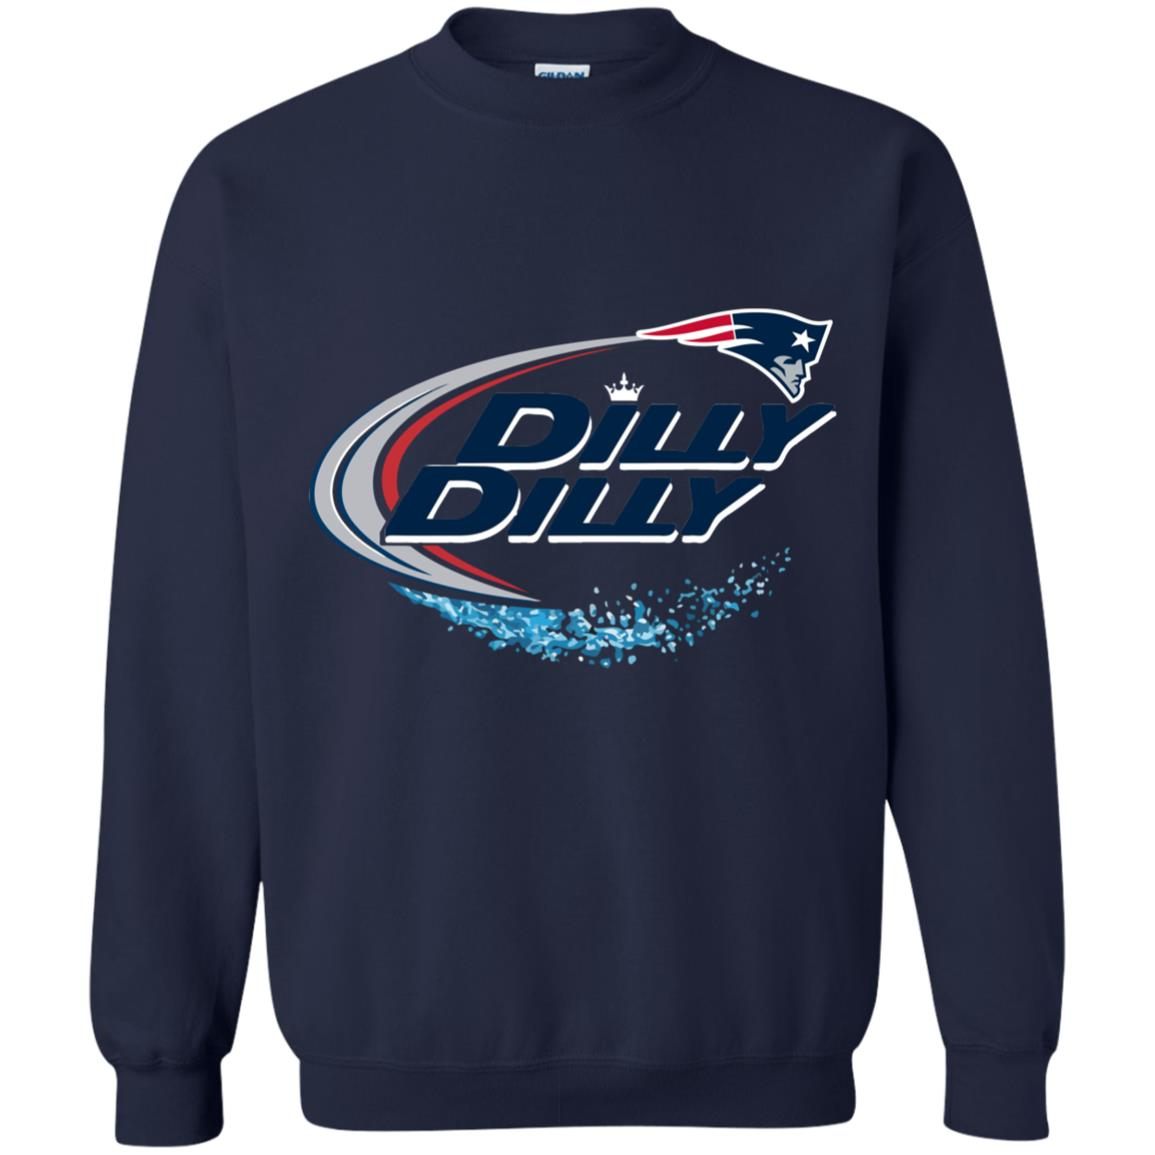 image 1562 - New England Patriots Dilly Dilly  shirt, sweatshirt, hoodie